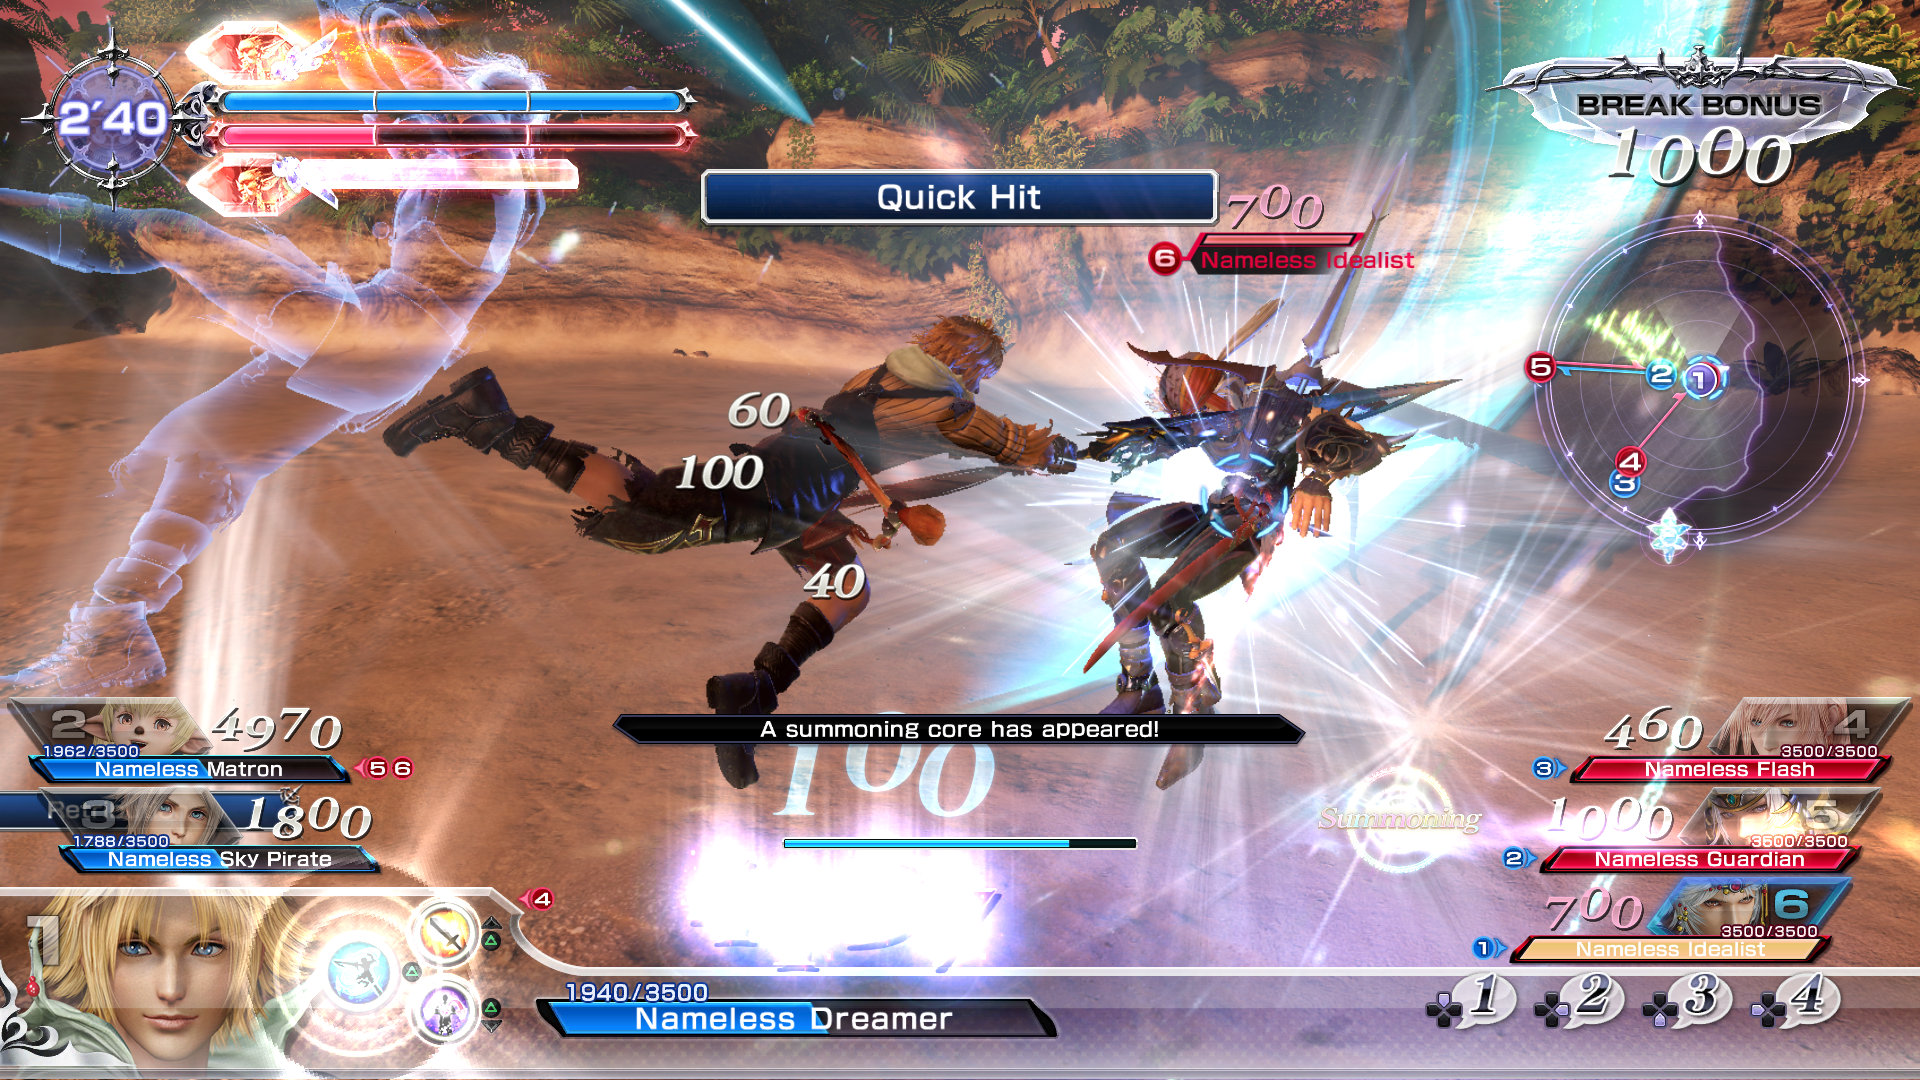 dissidia-final-fantasy-nt-screen-01-ps4-